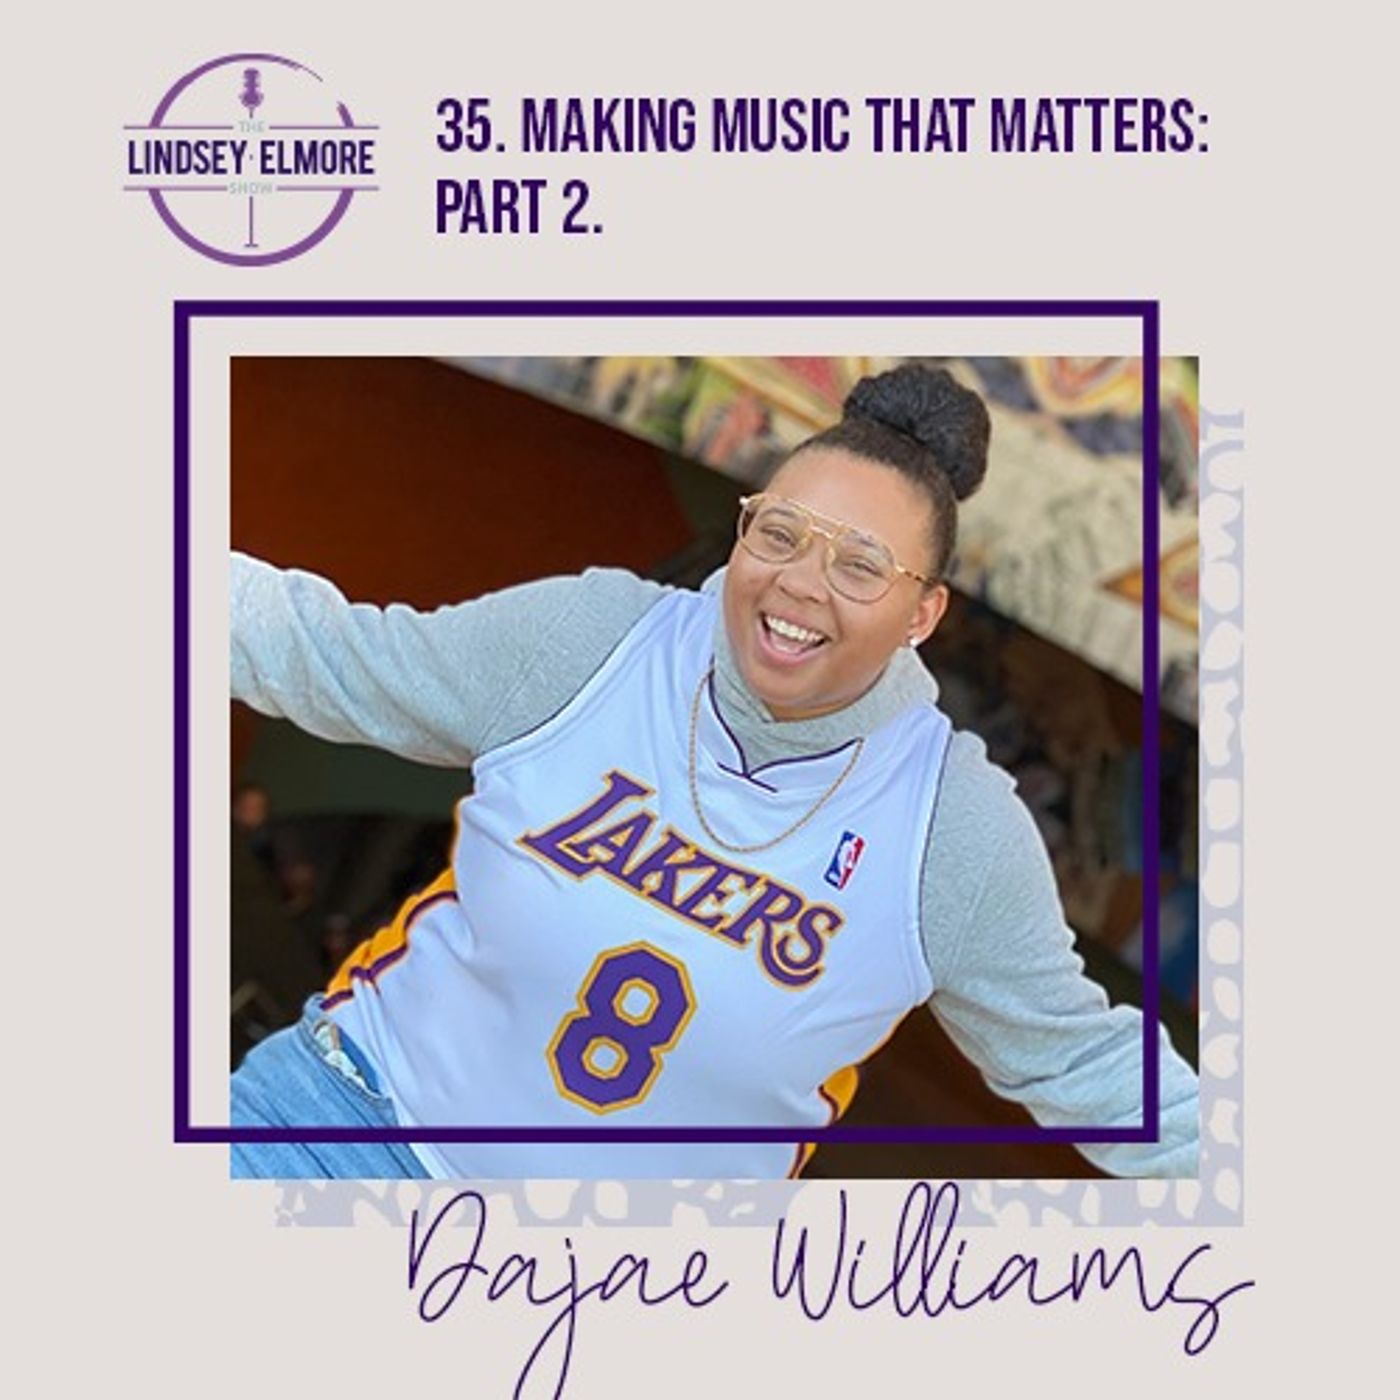 Making music that matters: part 2. An interview with Dajae Williams.